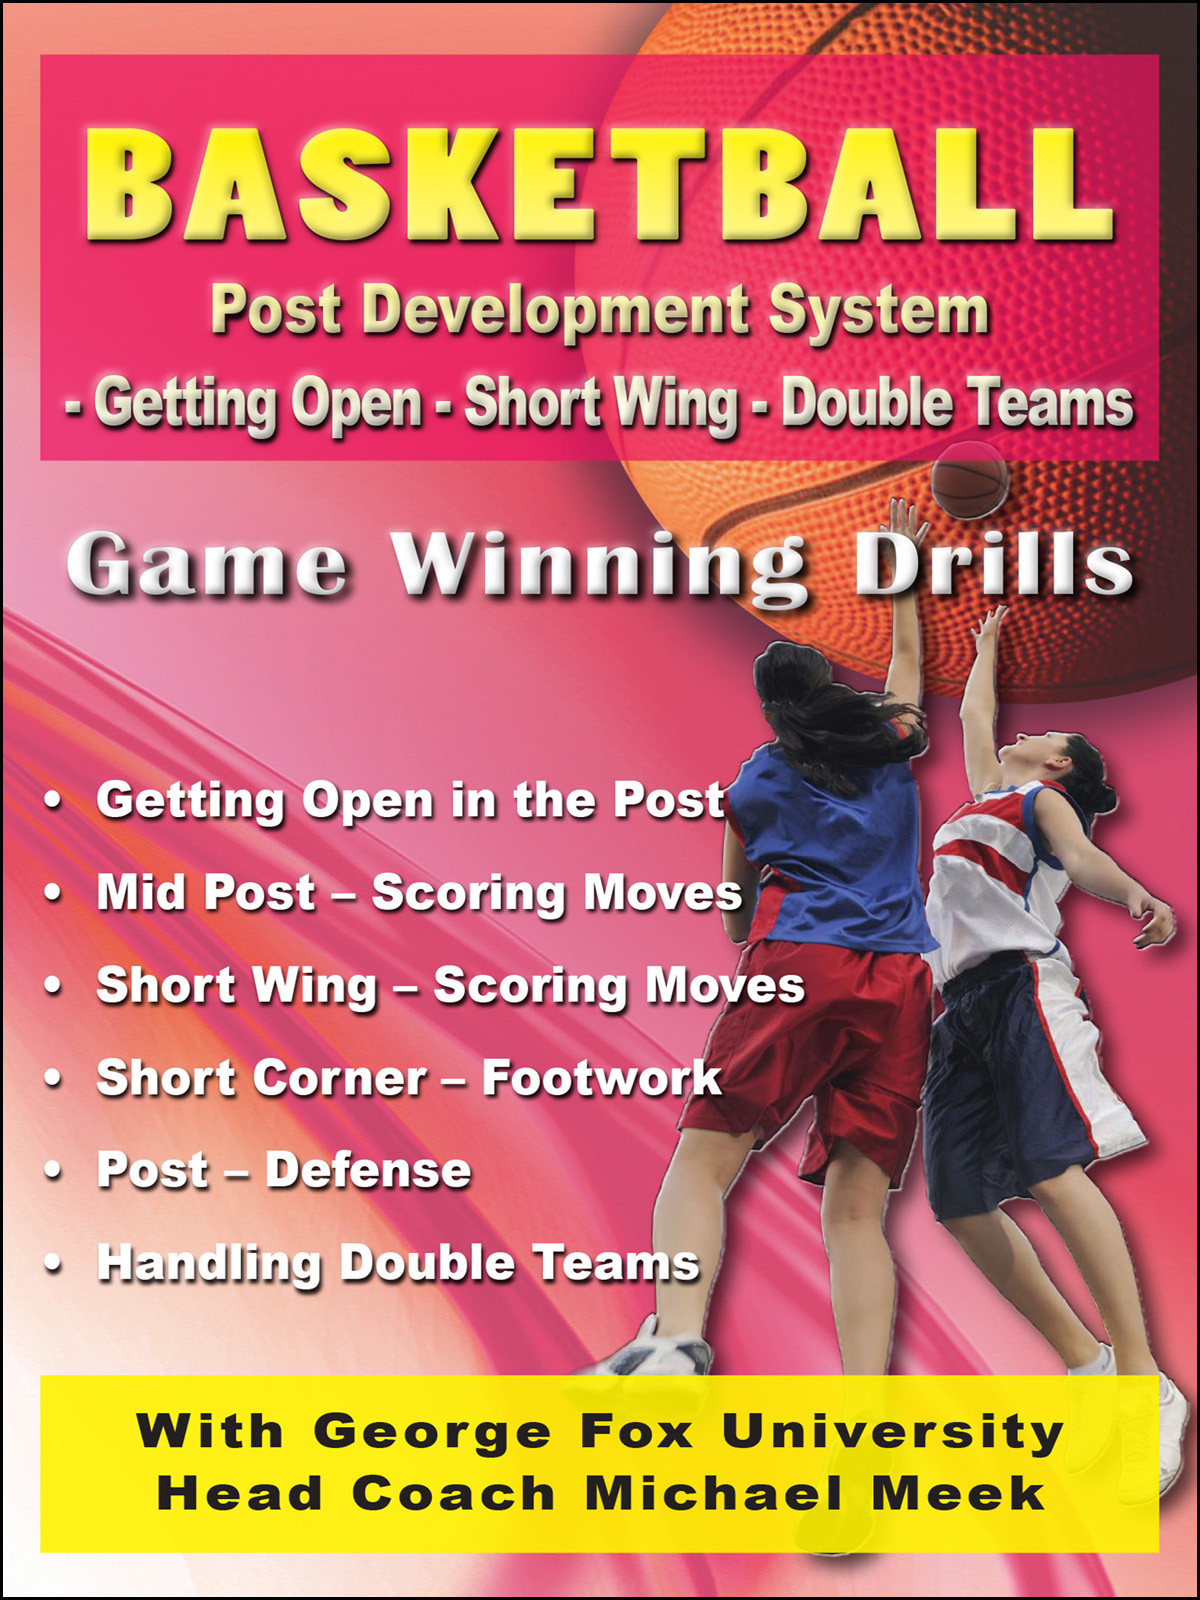 K4209 - Basketball Post Development System  Getting Open-Short Wing-Double Teams